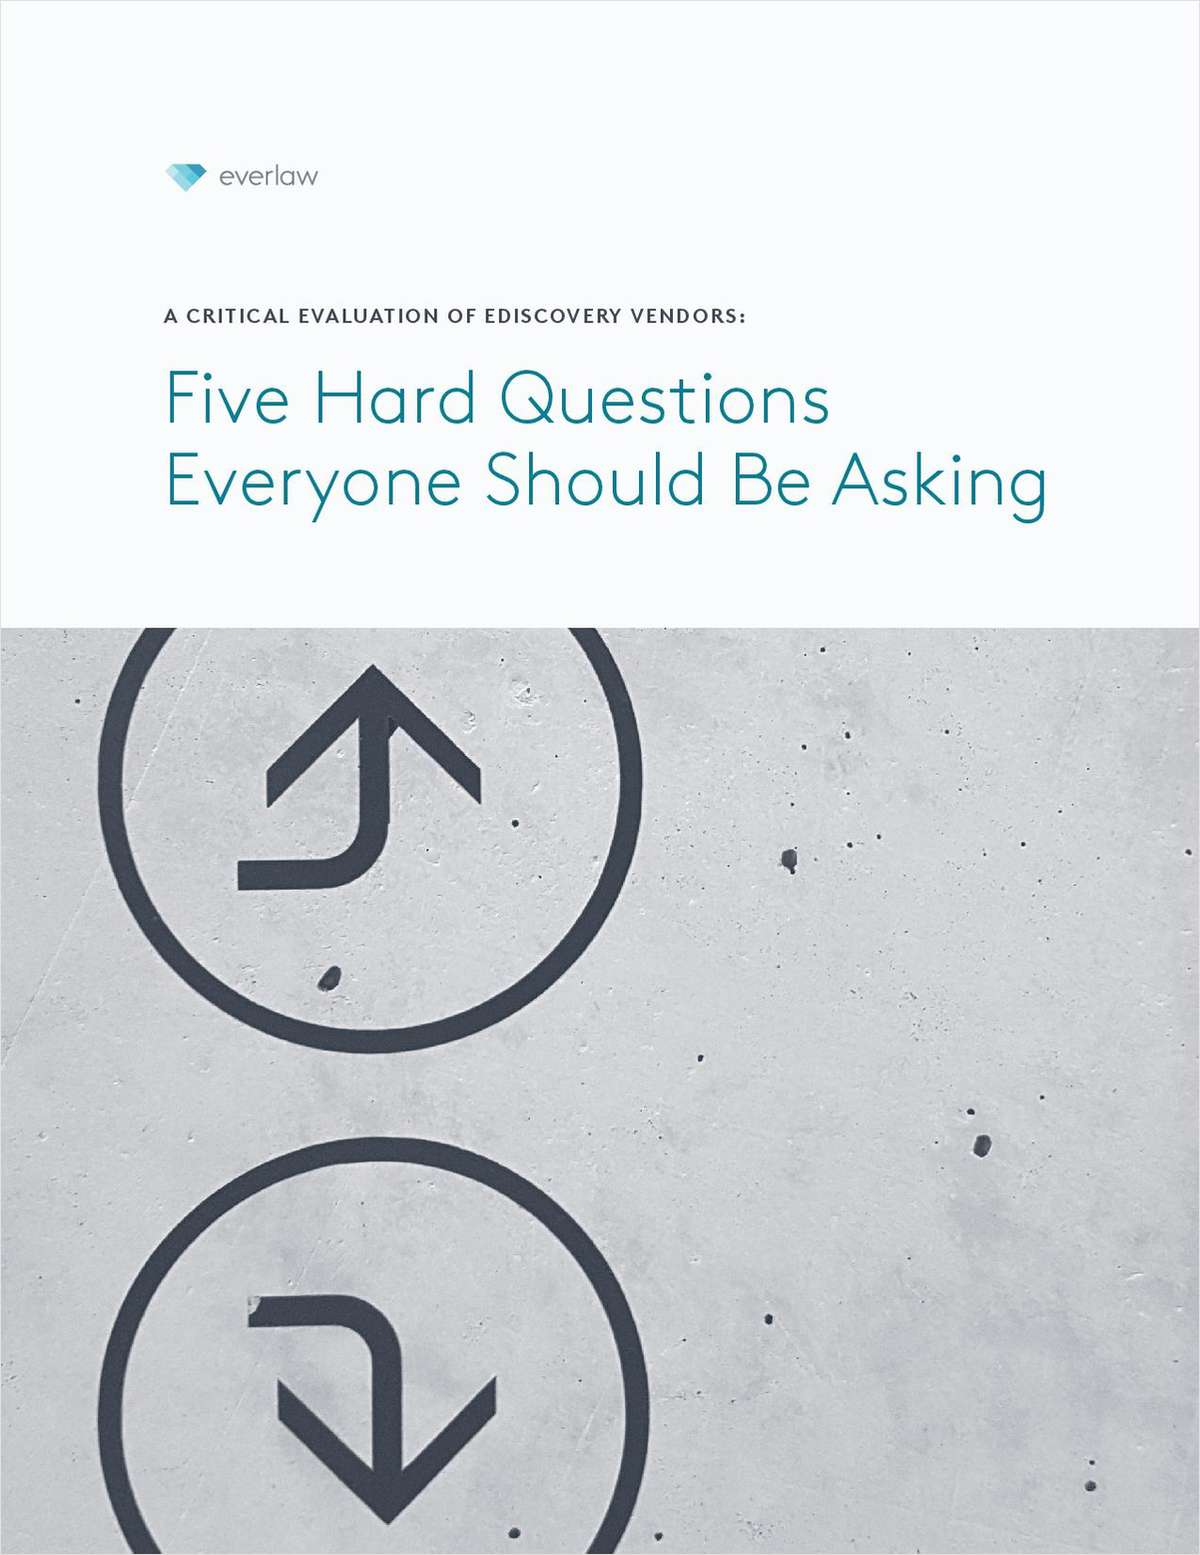 A Critical Evaluation of Ediscovery Vendors: Five Hard Questions Everyone Should Be Asking